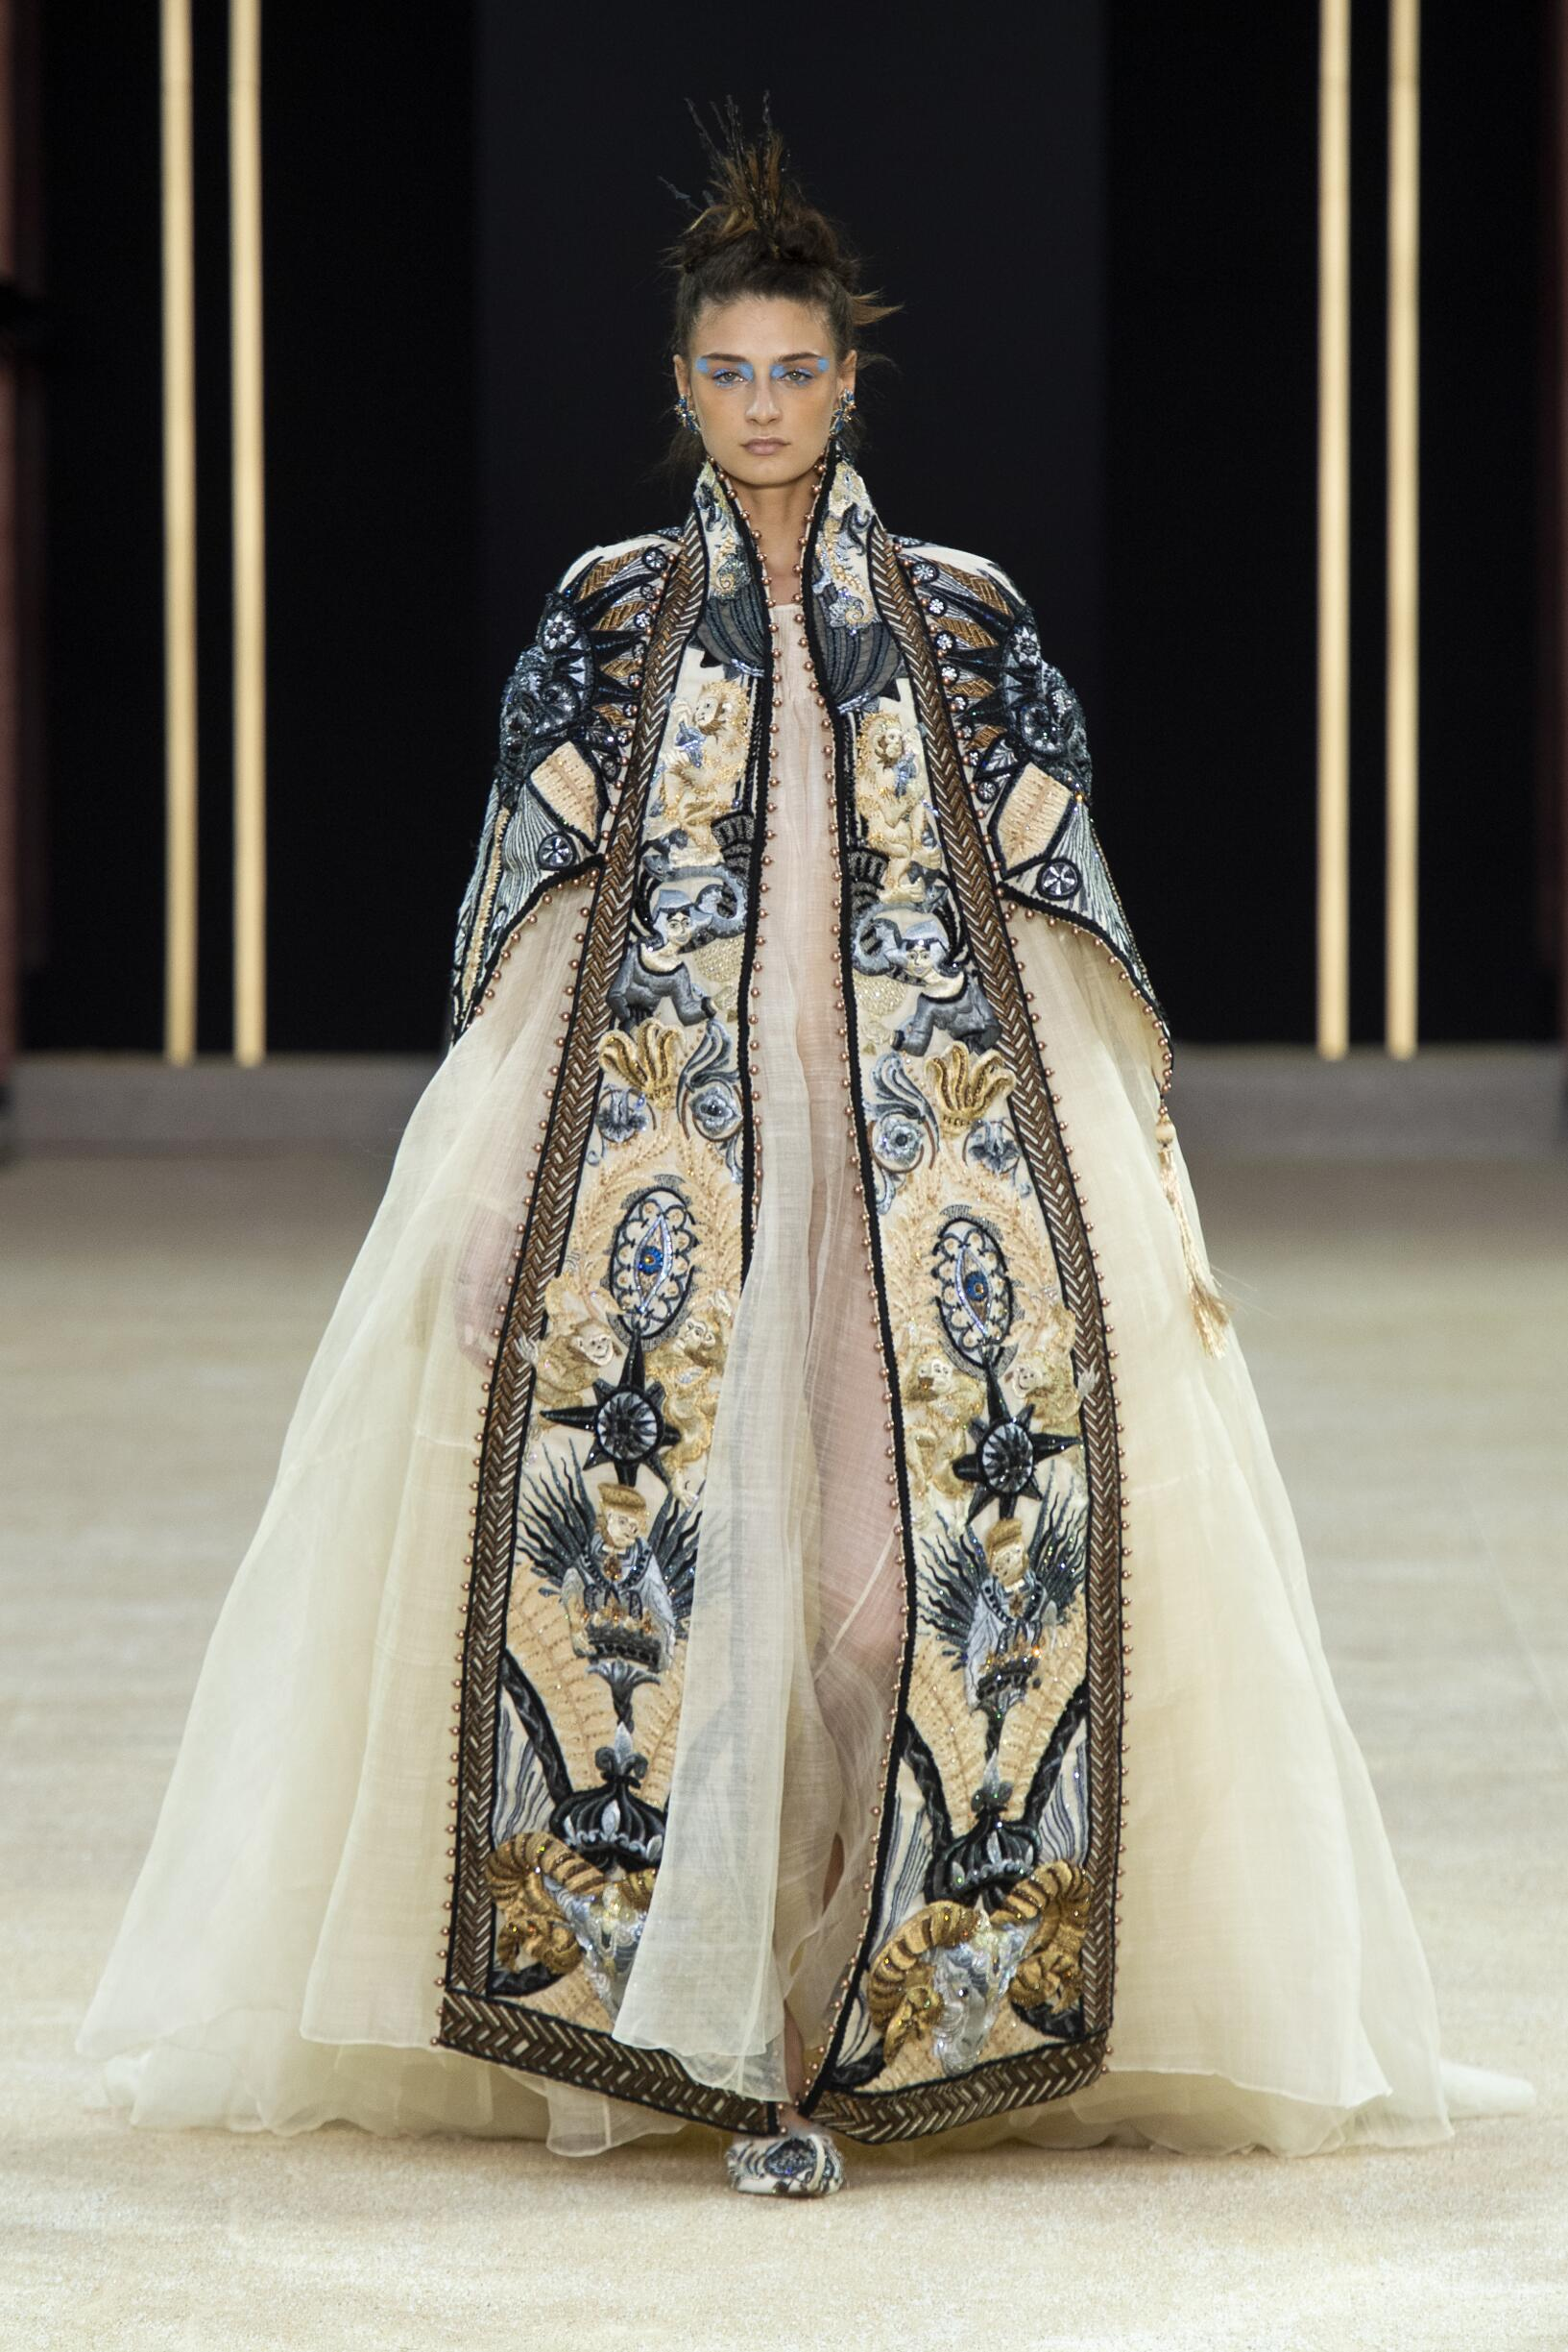 Catwalk Guo Pei Haute Couture Winter 2019-2020